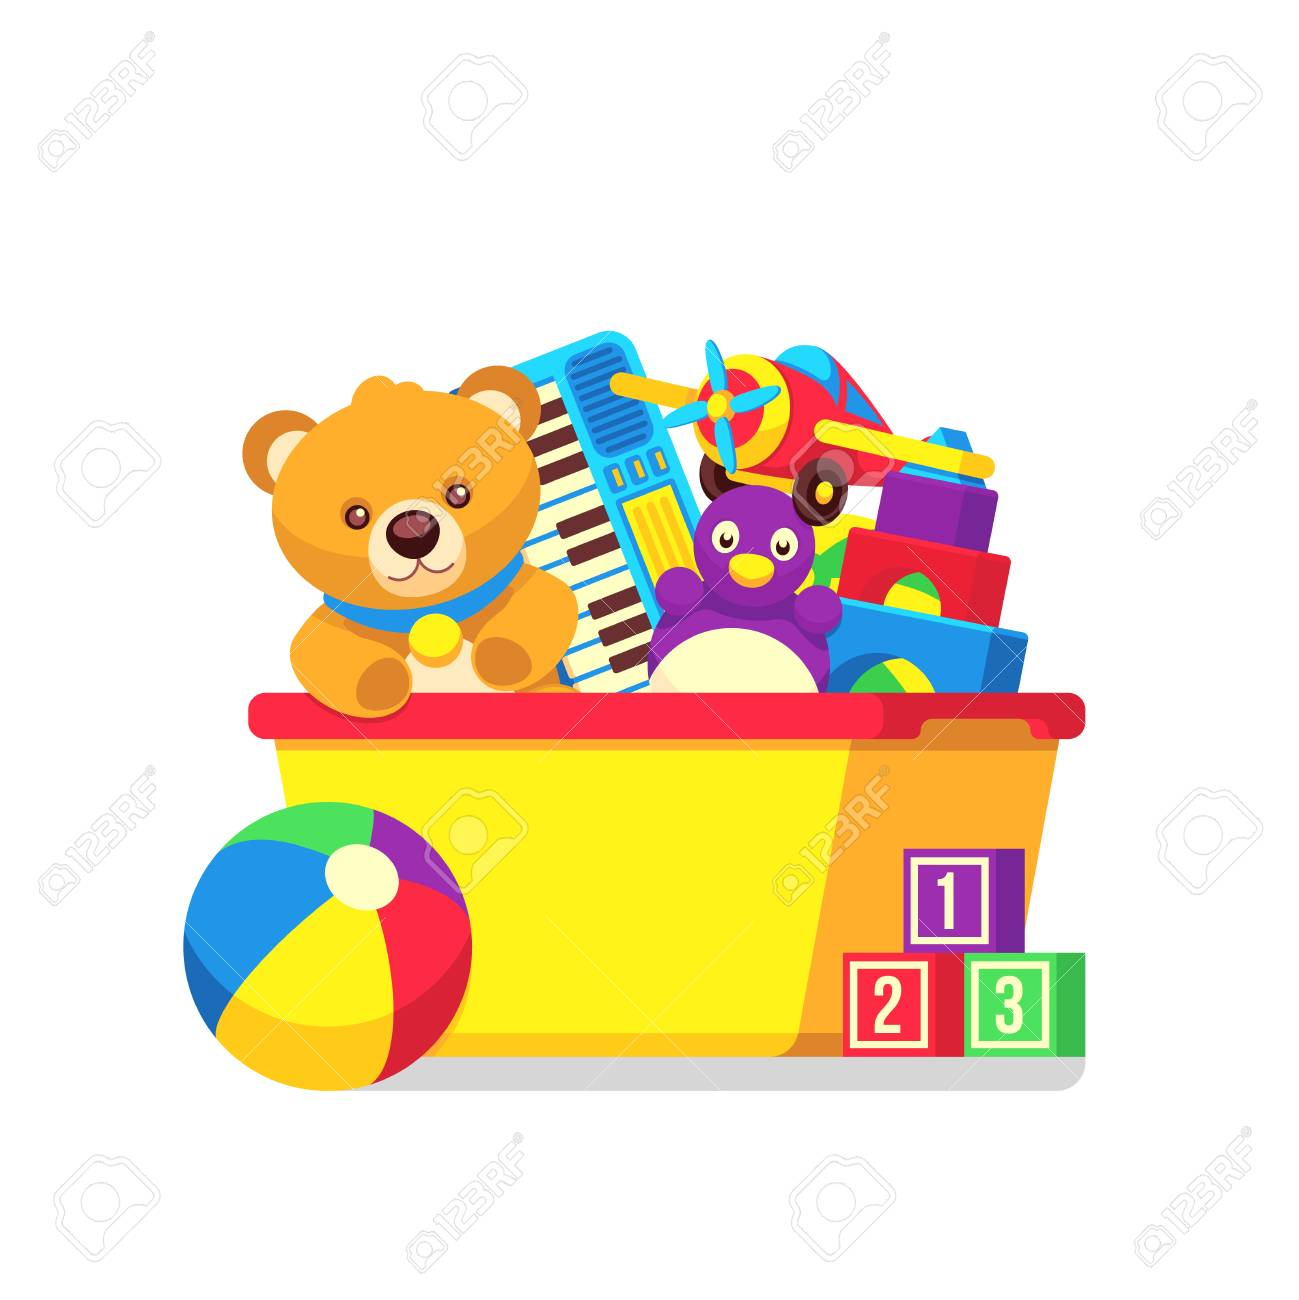 kids toys in kids box vector clipart cartoon kids toys in box rh 123rf com clipart of toys and games clipart of toy matchbox cars